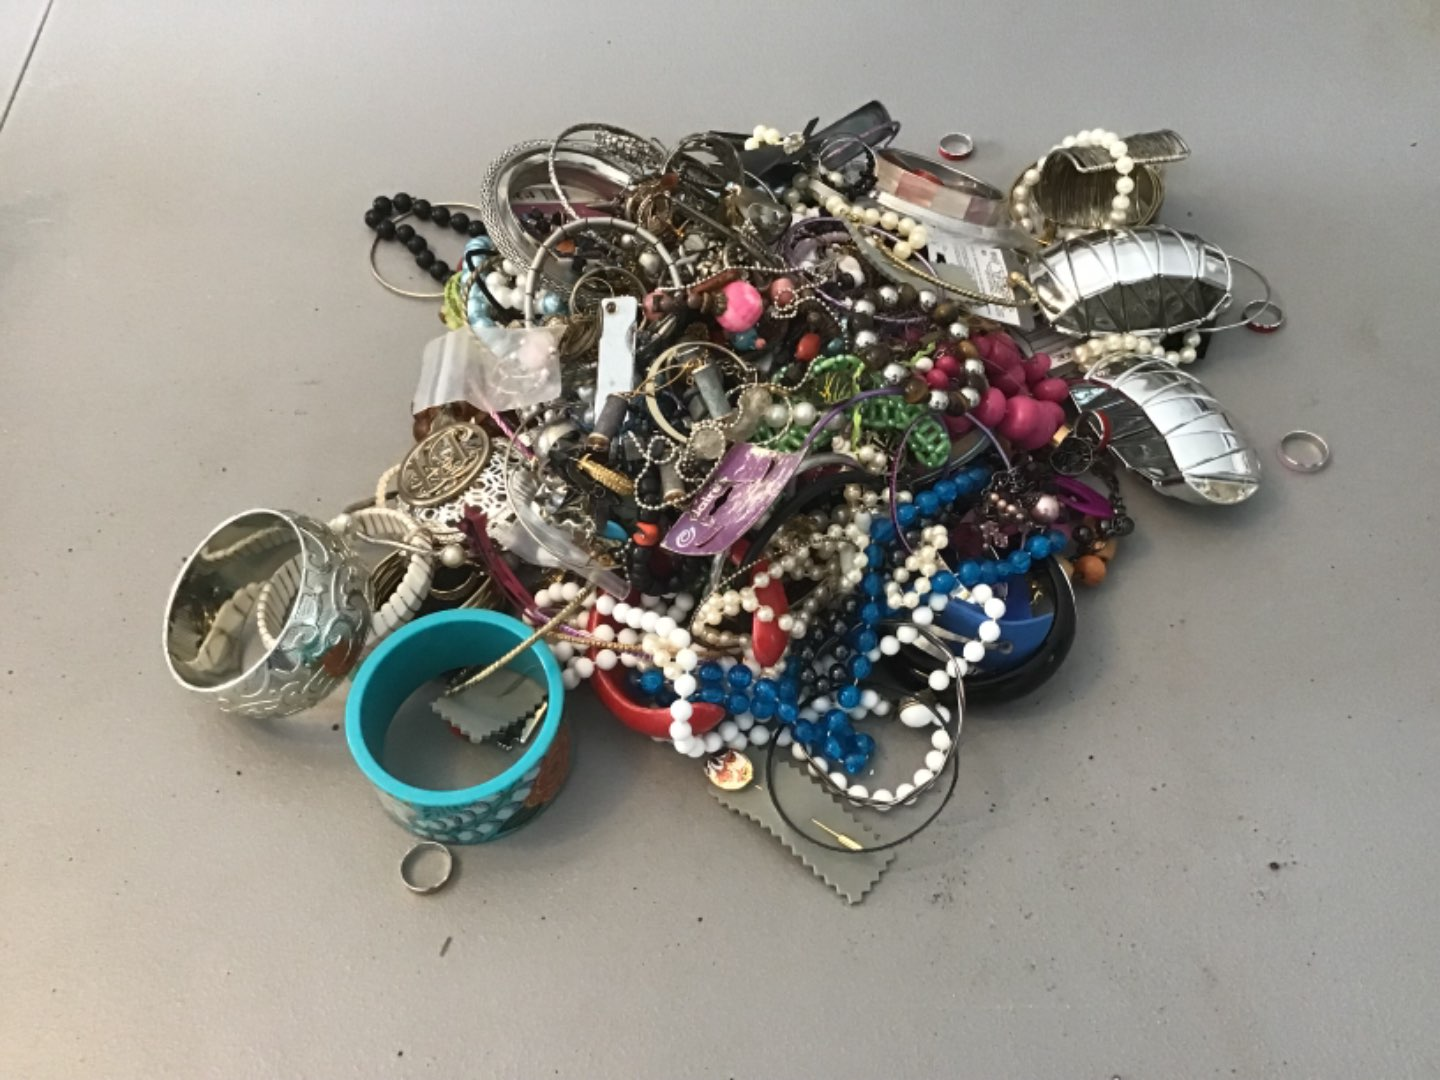 Lot # 235 MORE! HUUUGE LOT (Approx 10 Lbs) OF COSTUME JEWELRY! As Found